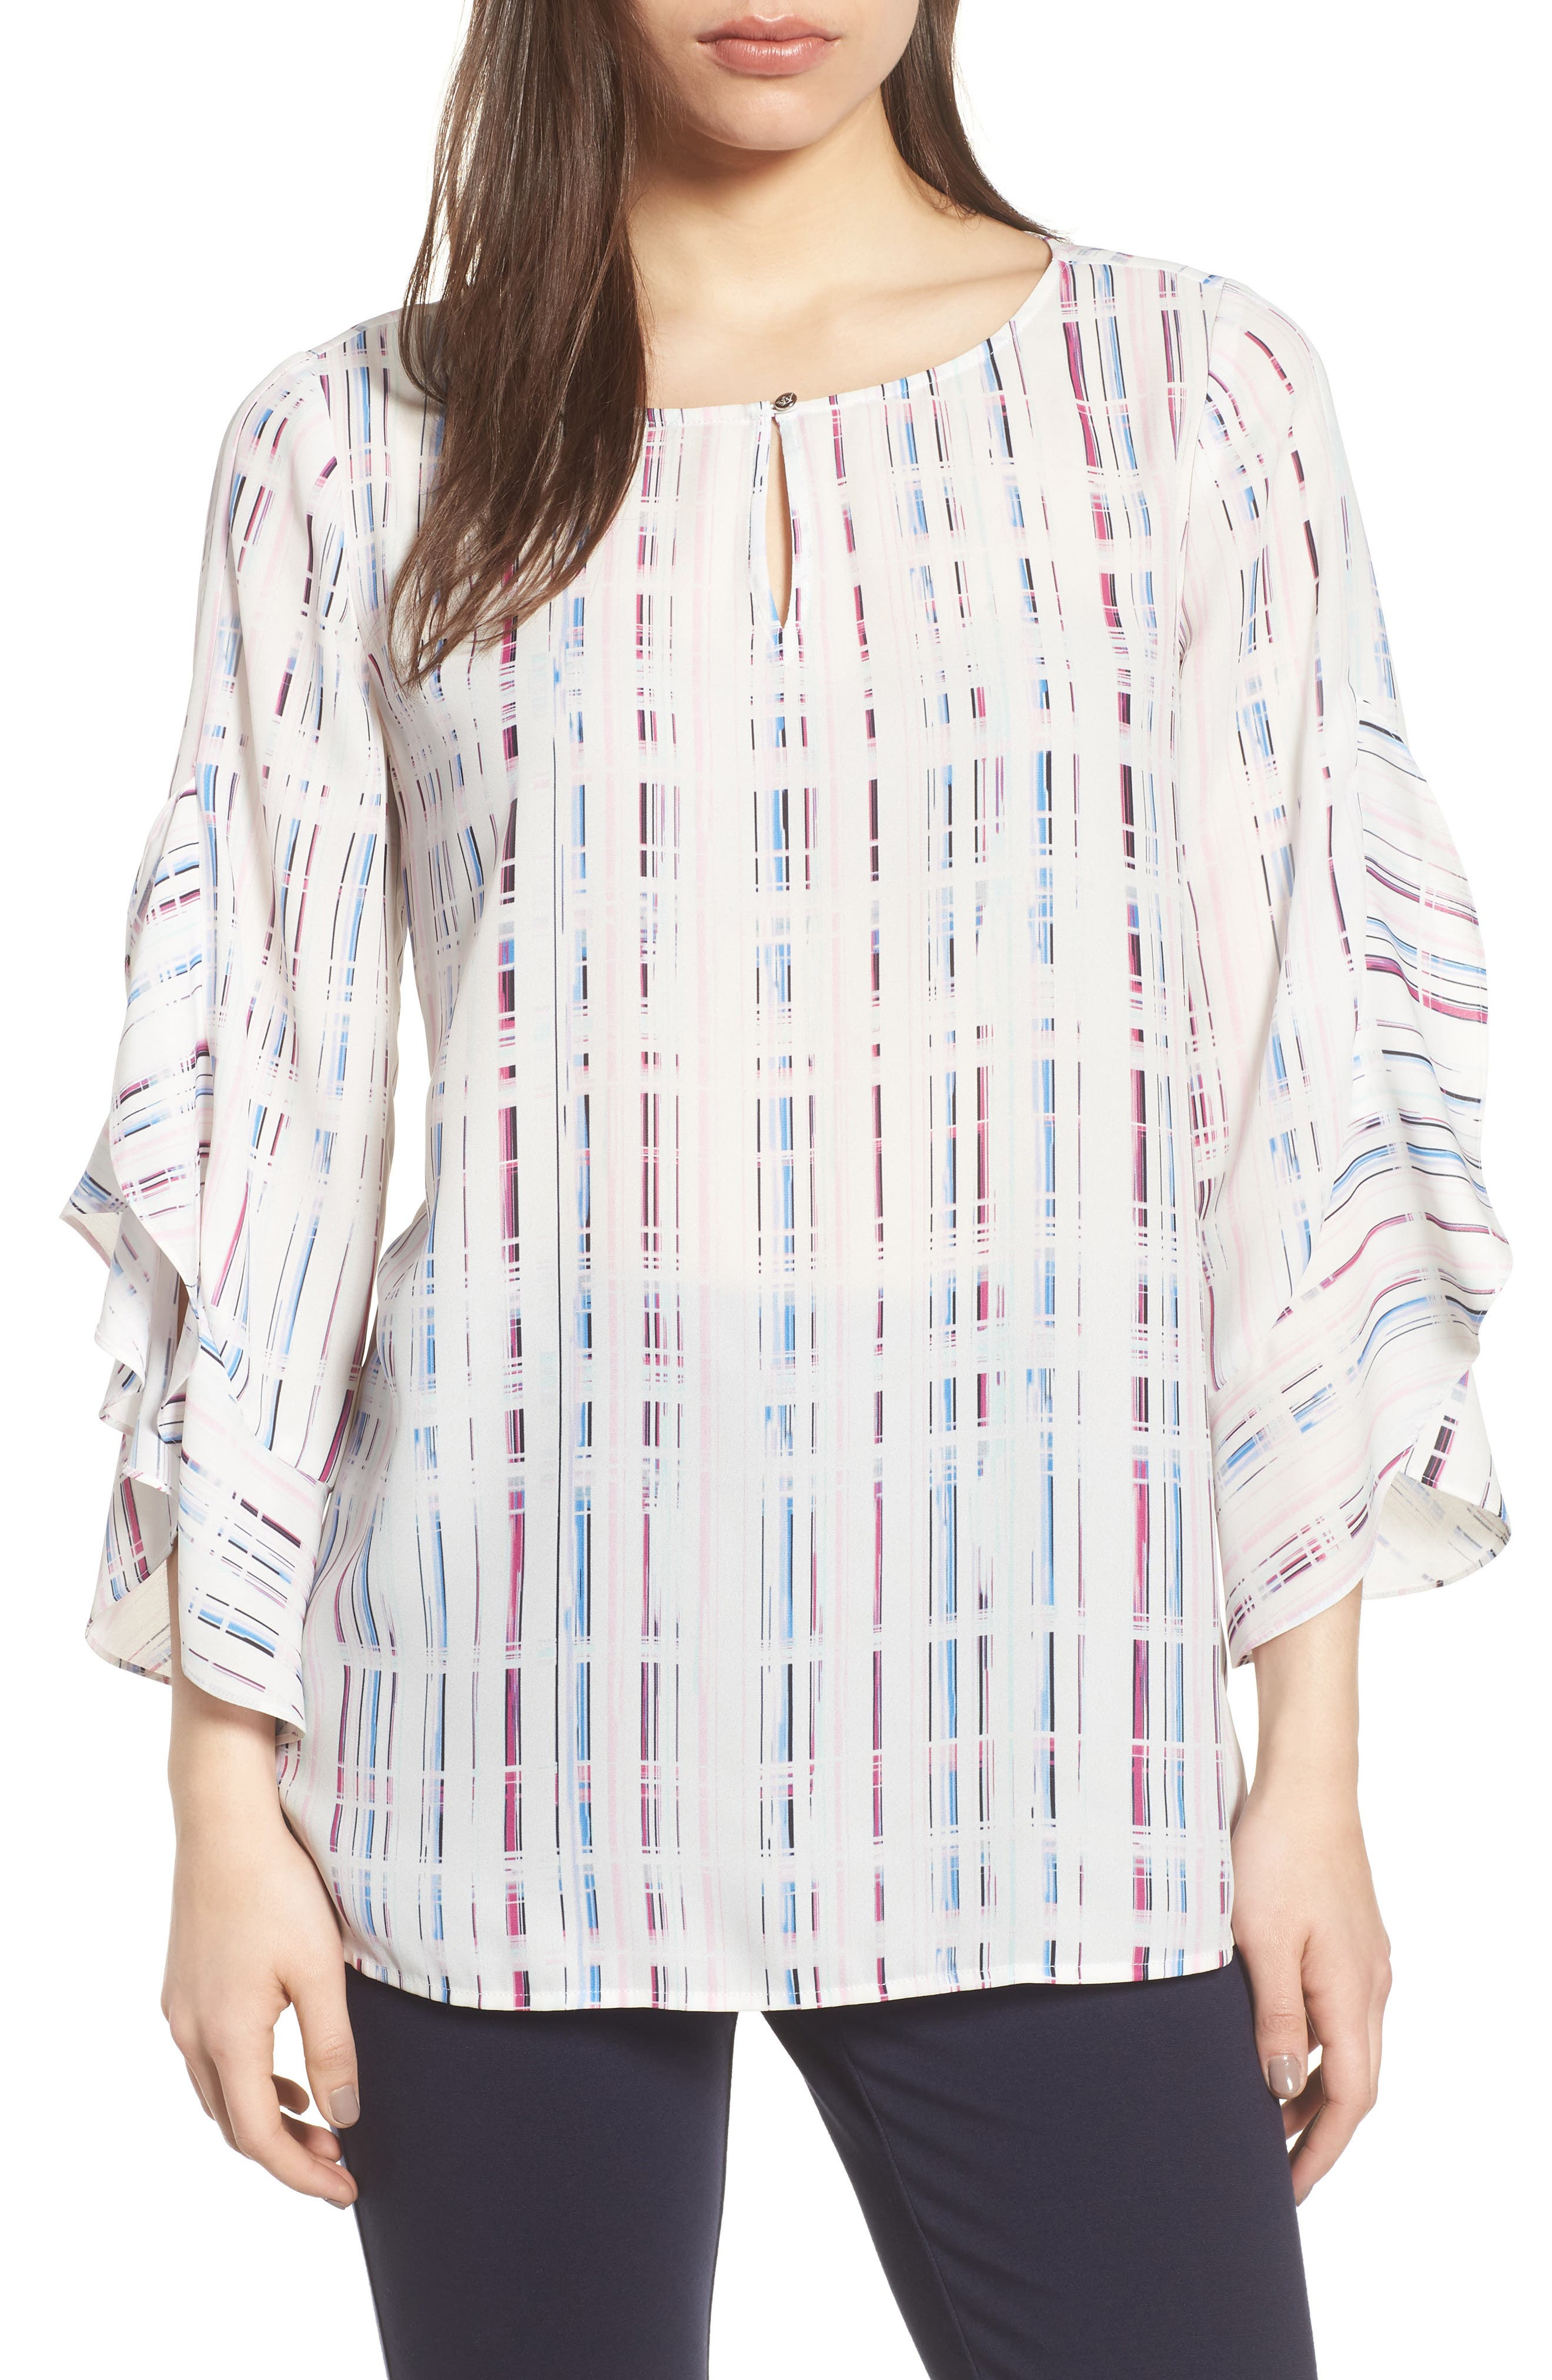 Prism Grid Print Blouse,                         Main,                         color, 103-New Ivory